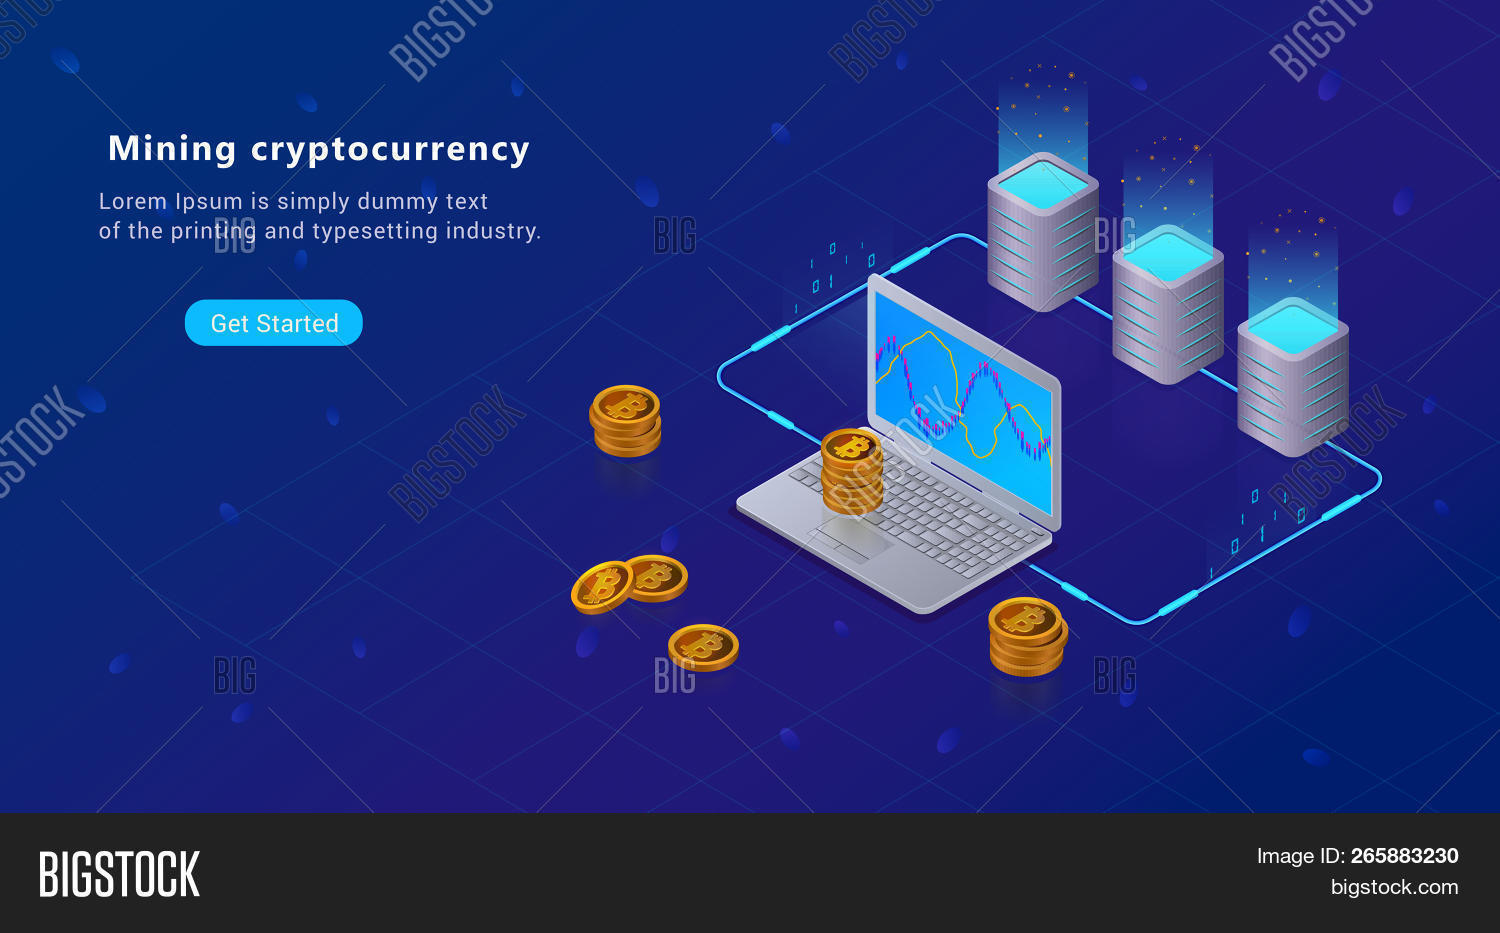 getting started mining cryptocurrency